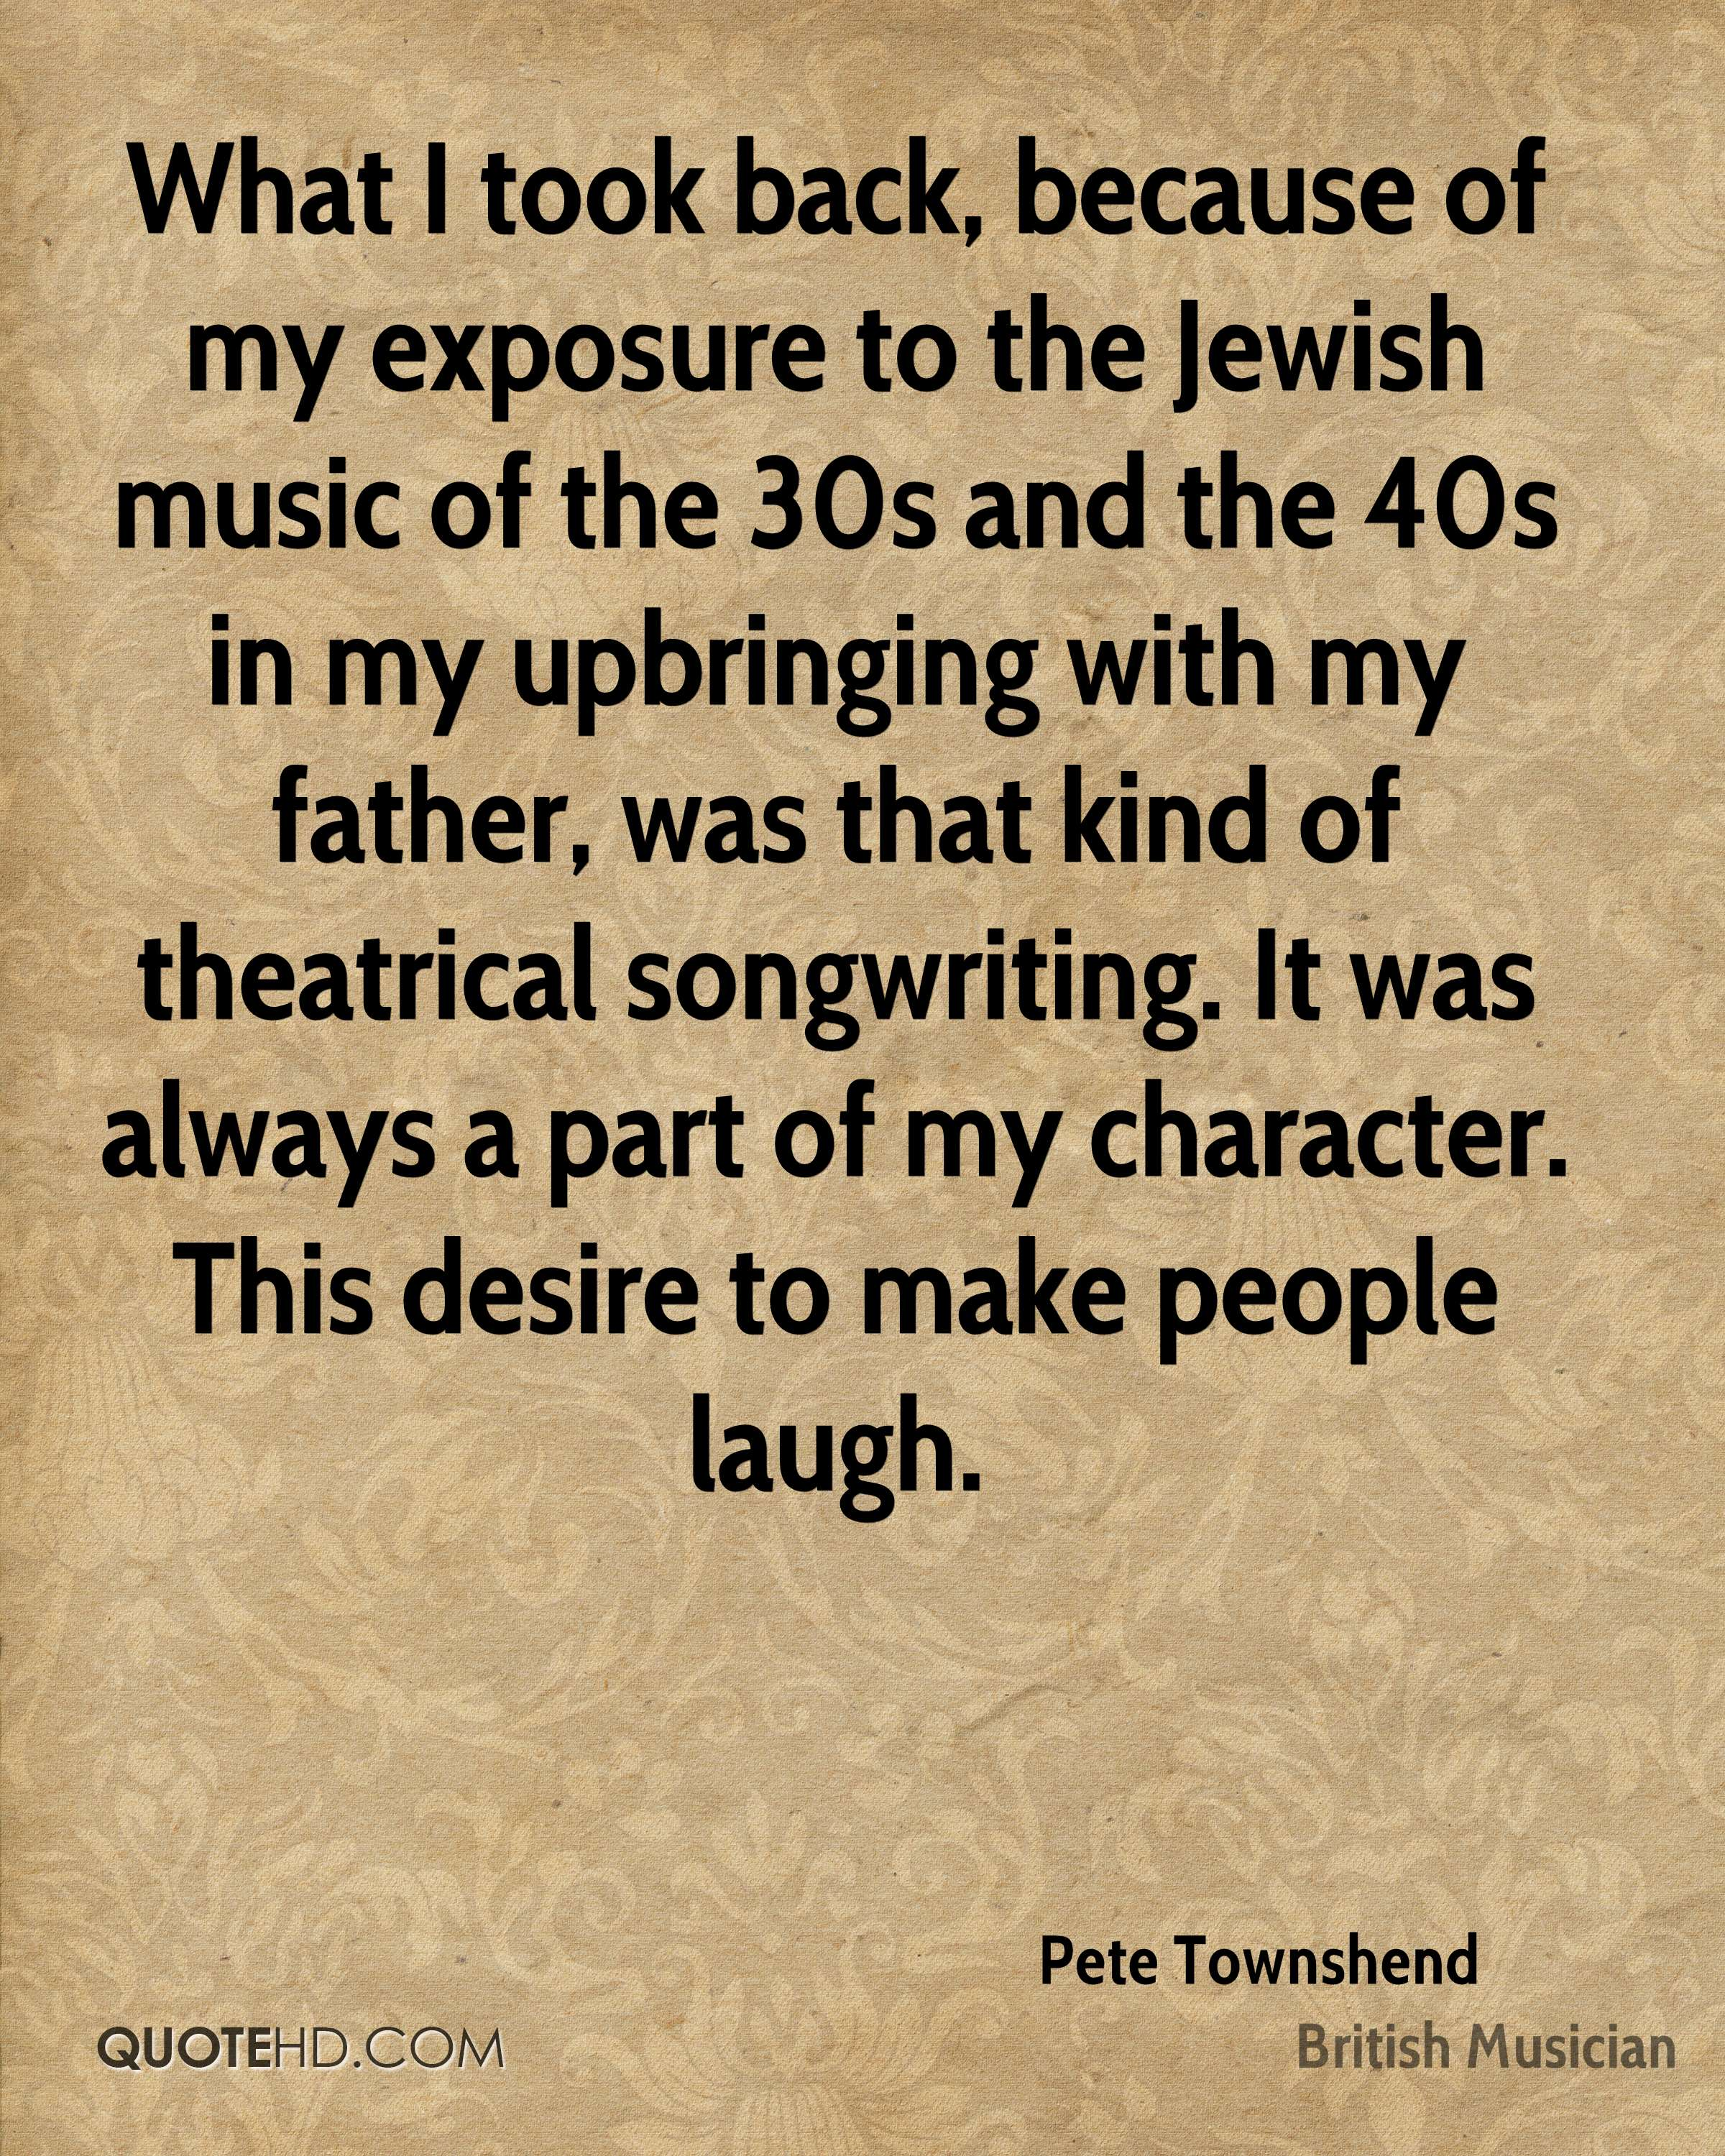 What I took back, because of my exposure to the Jewish music of the 30s and the 40s in my upbringing with my father, was that kind of theatrical songwriting. It was always a part of my character. This desire to make people laugh.